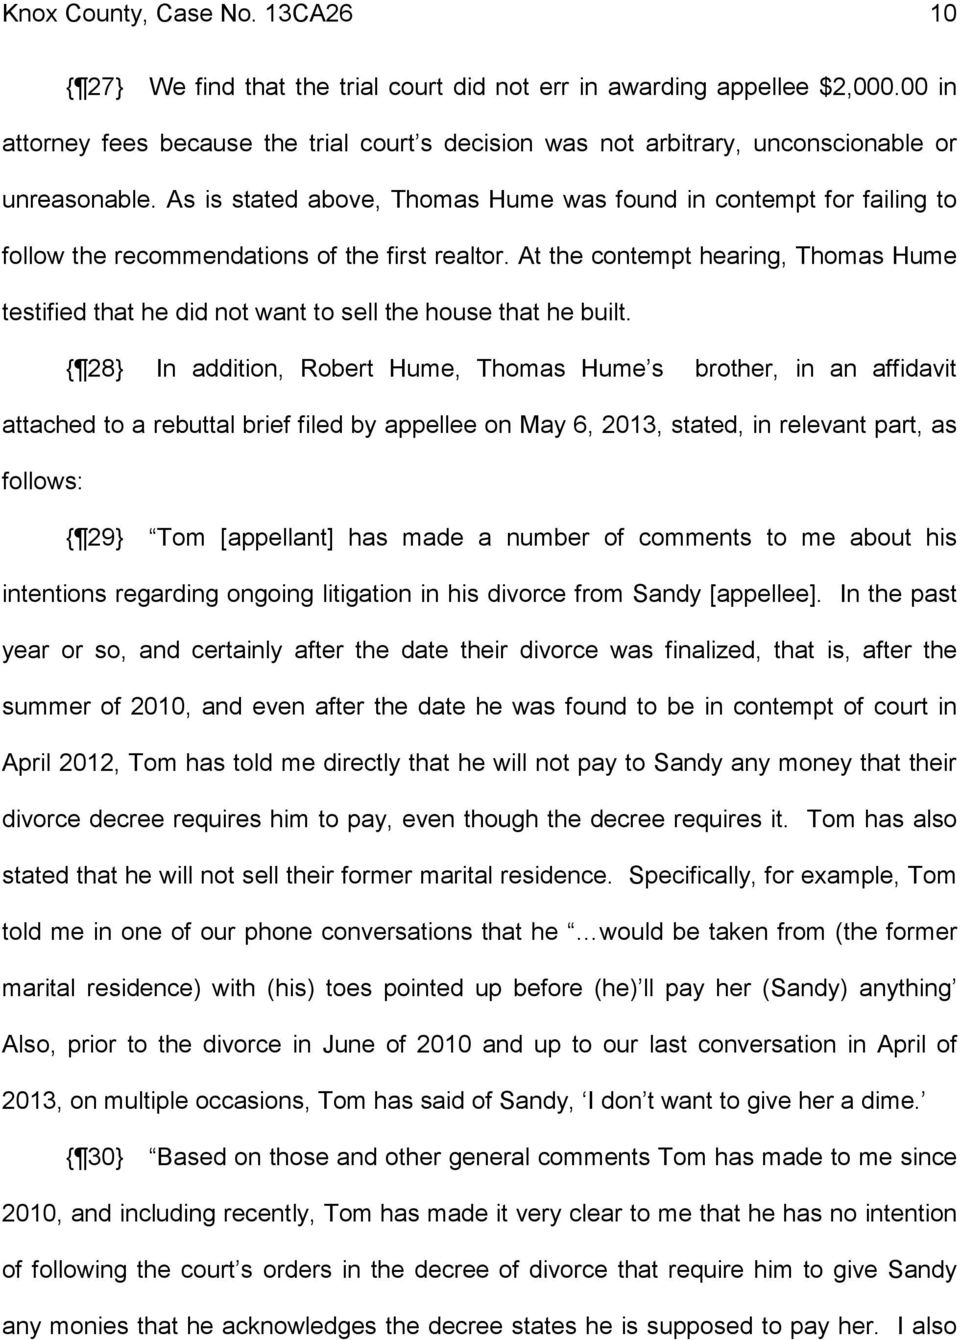 As is stated above, Thomas Hume was found in contempt for failing to follow the recommendations of the first realtor.